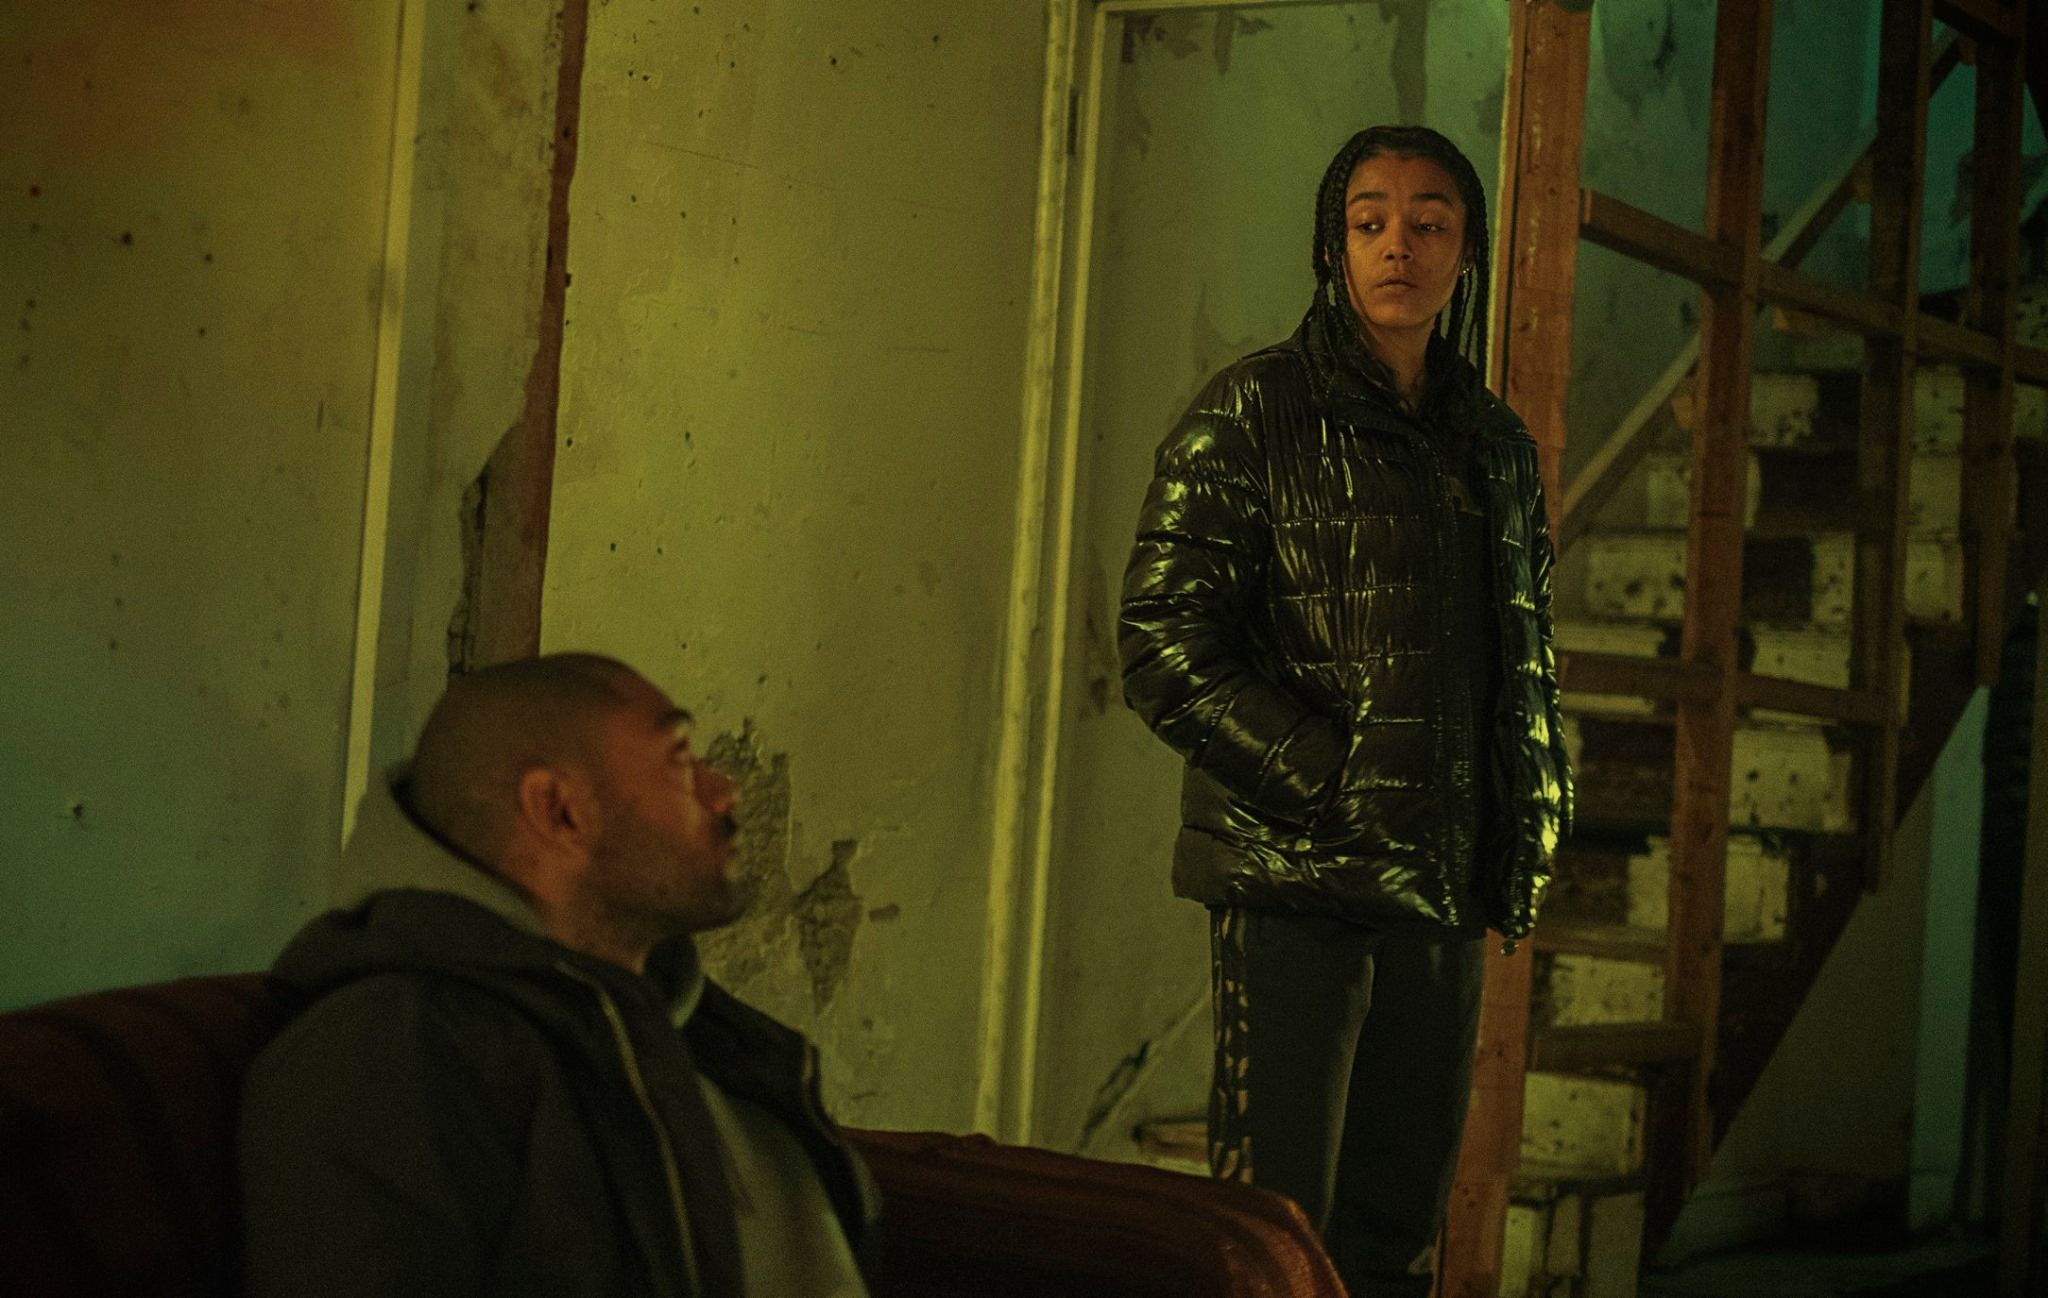 Image may contain: Top Boy, Top Boy season 3, new series, series three, Netflix, Drake, London, new, drama, cast, trailer, release date, Leather Jacket, Long Sleeve, Sleeve, Human, Person, Jacket, Coat, Clothing, Apparel